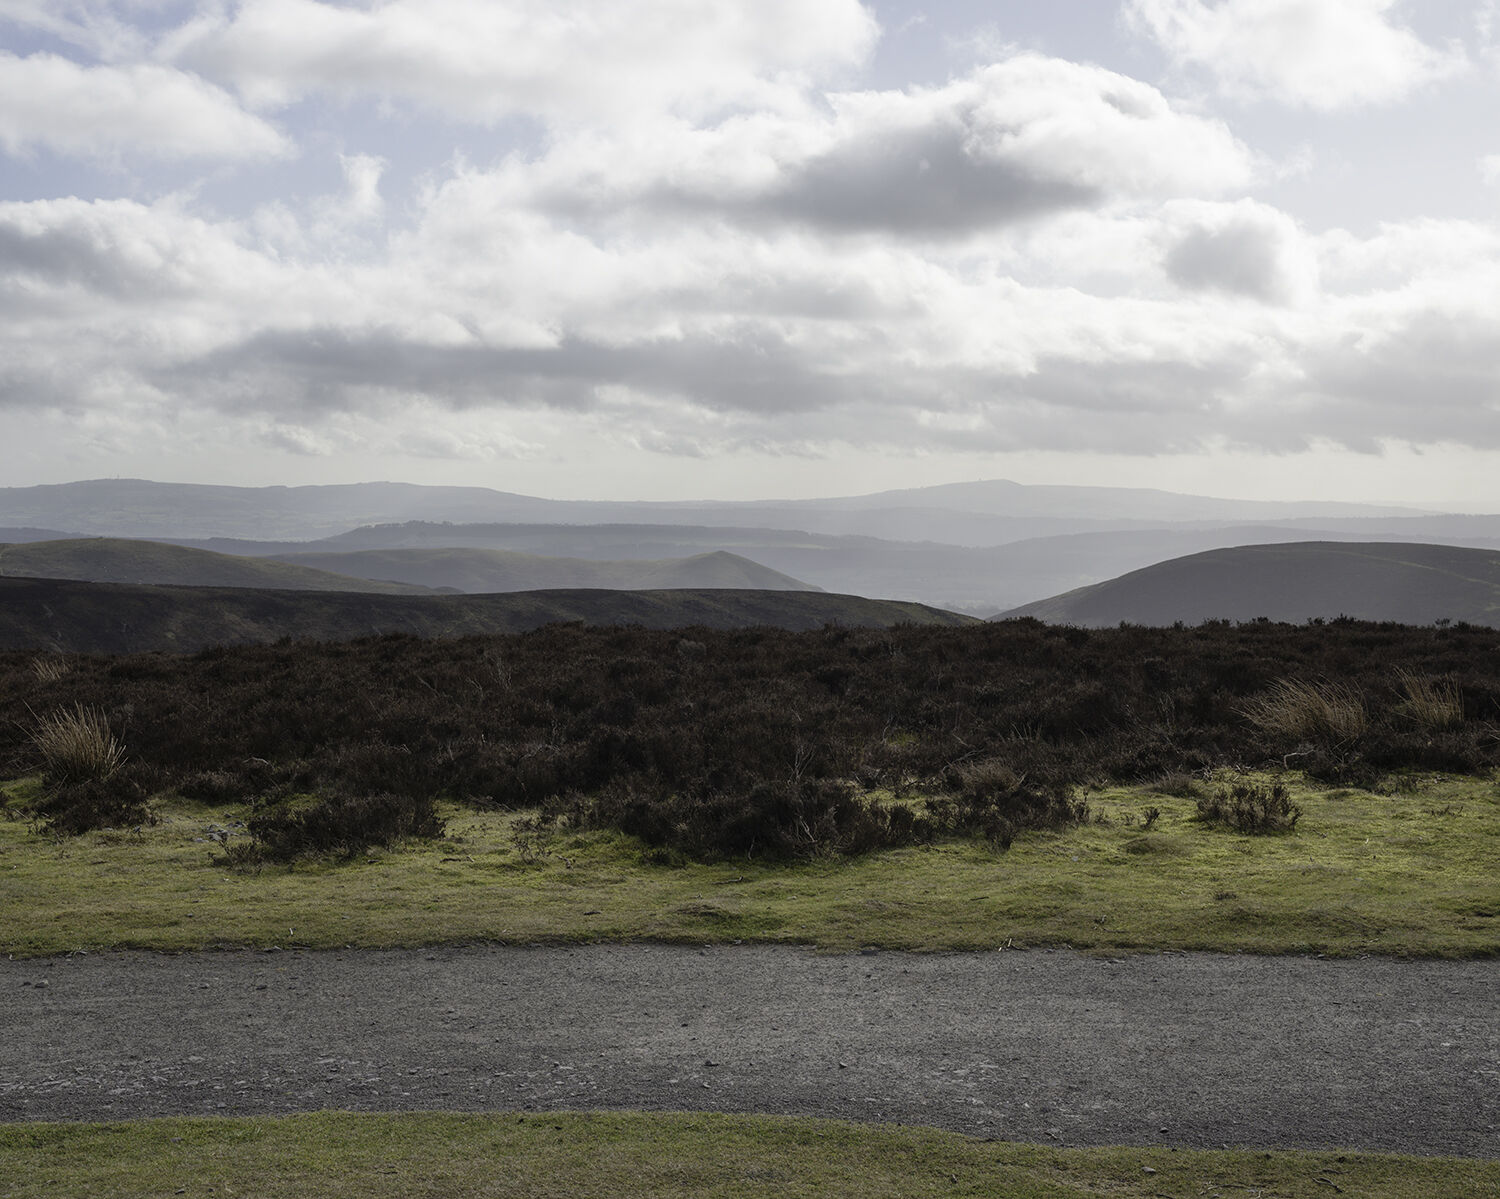 Pole Bank, The Long Mynd, Shropshire (SO 41519 94426) looking SE.